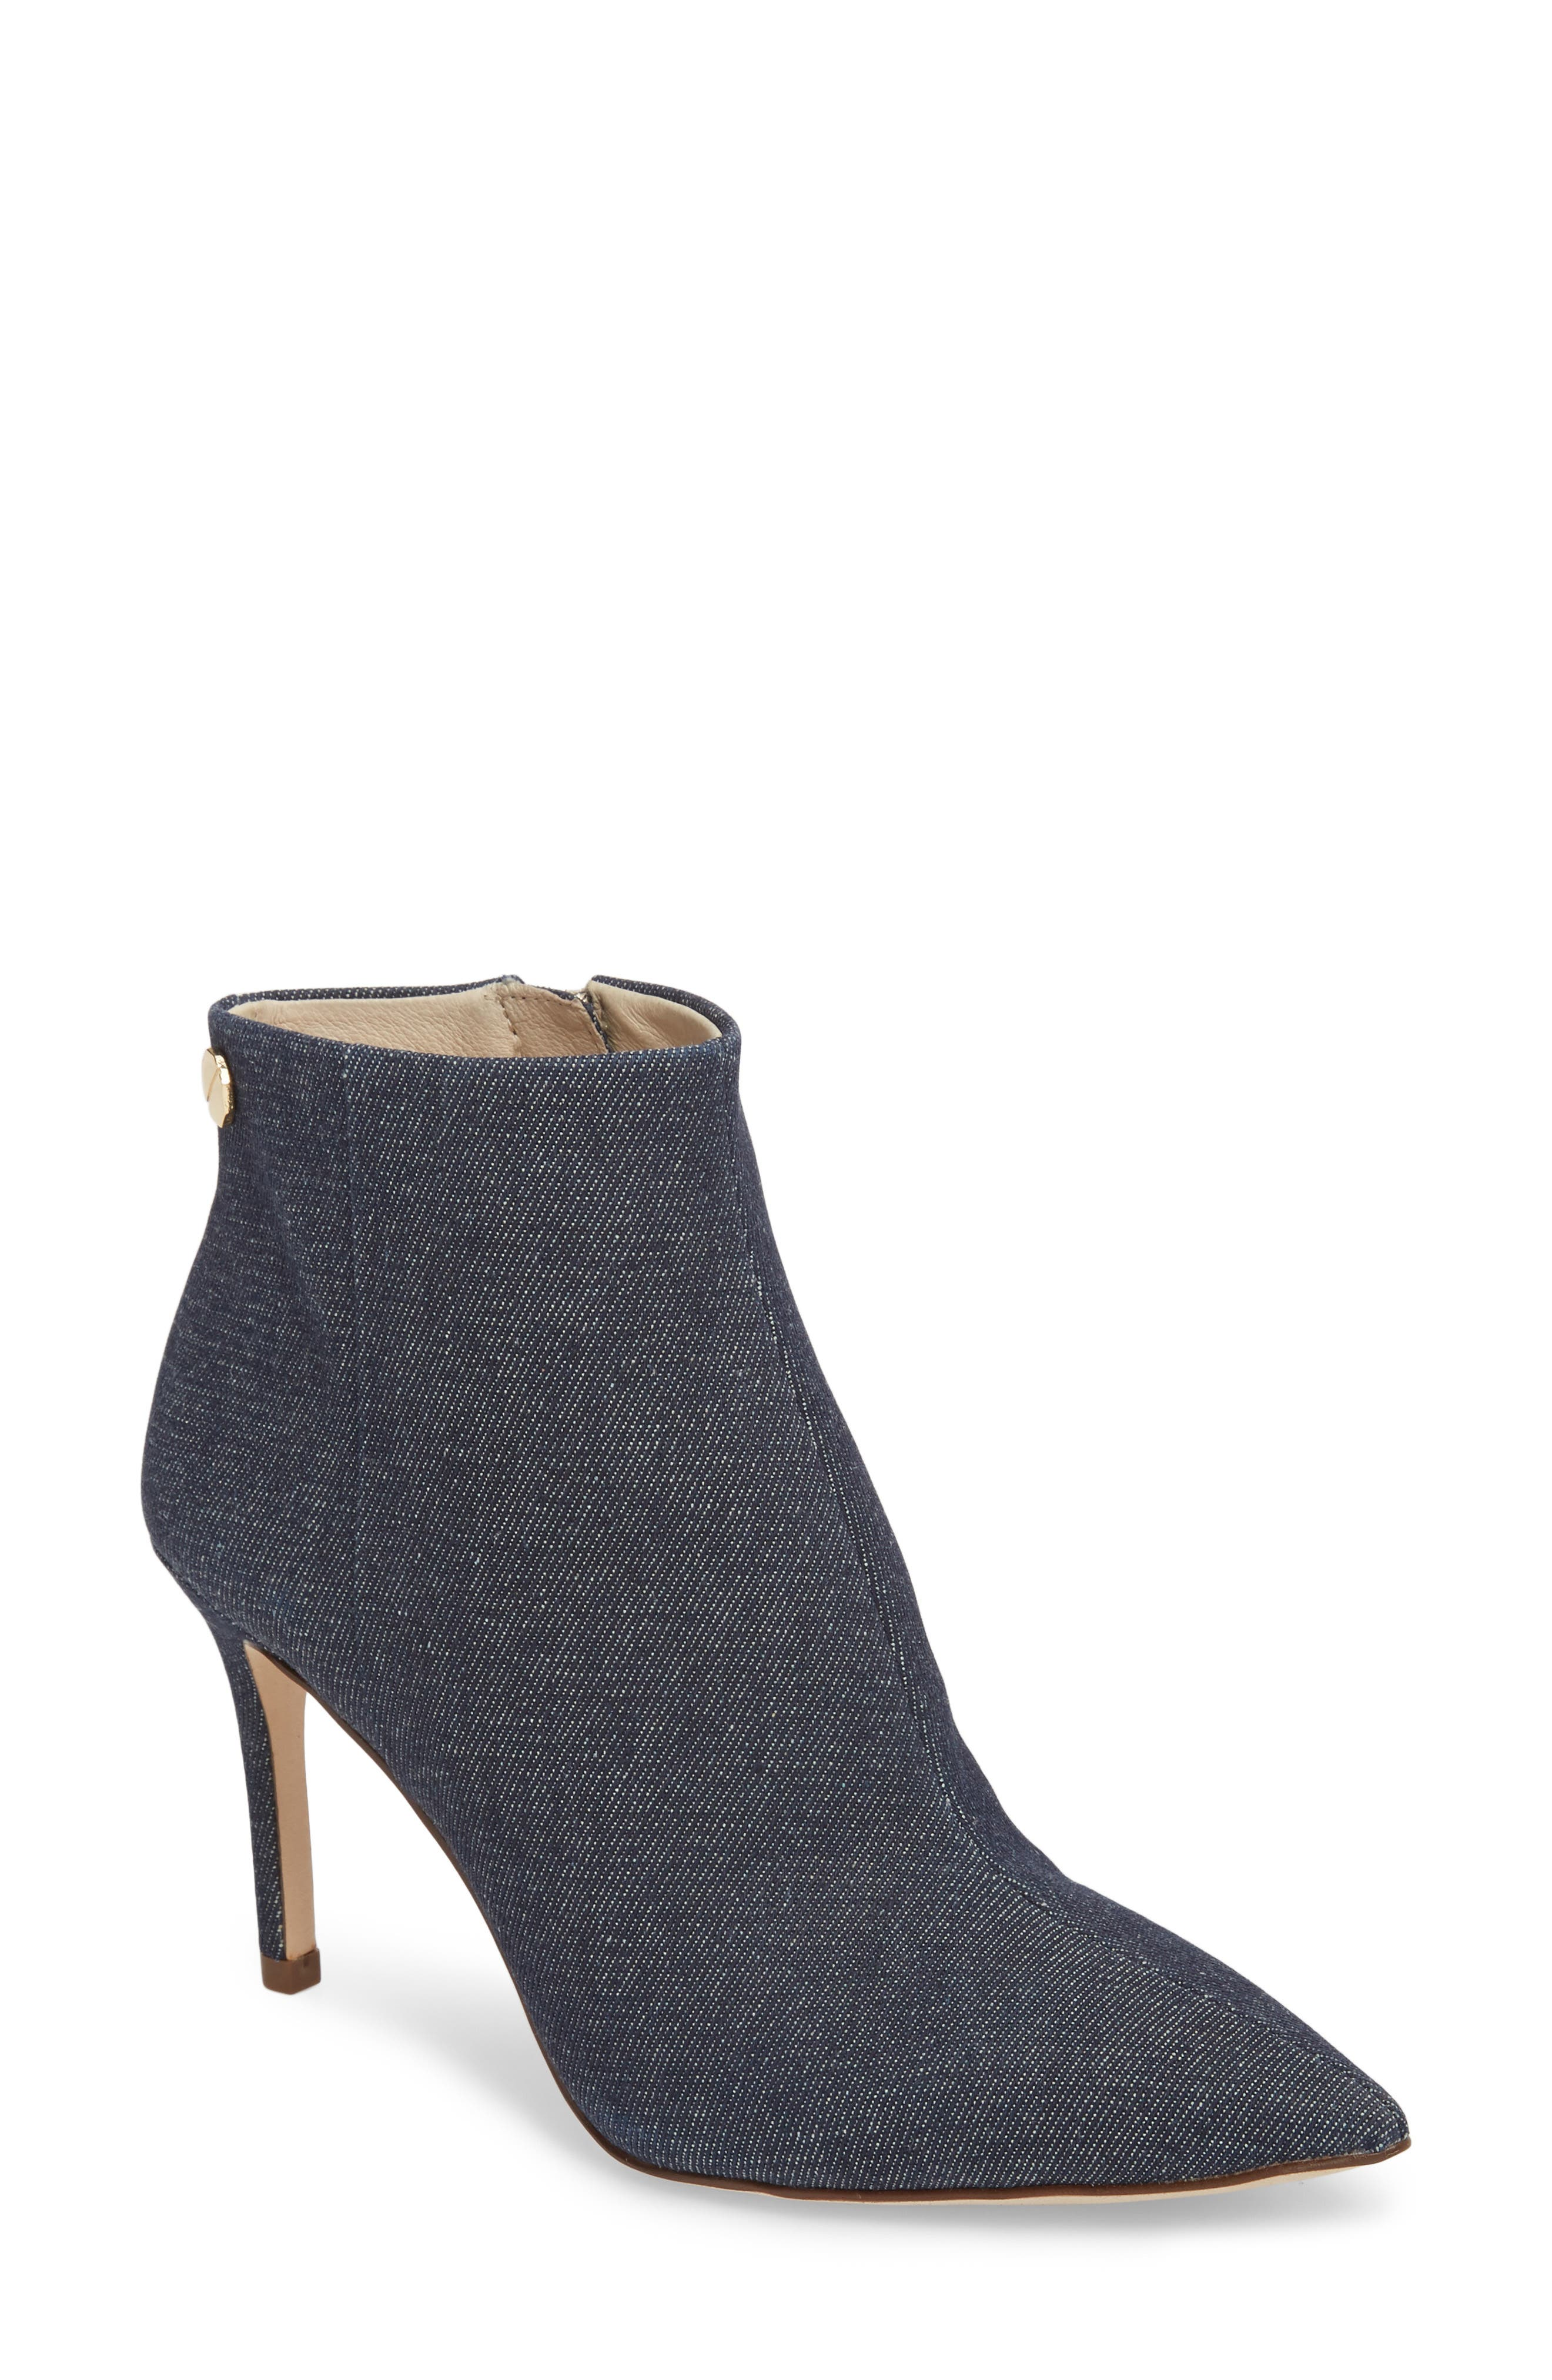 Louise et Cie | Sonya Pointed Toe